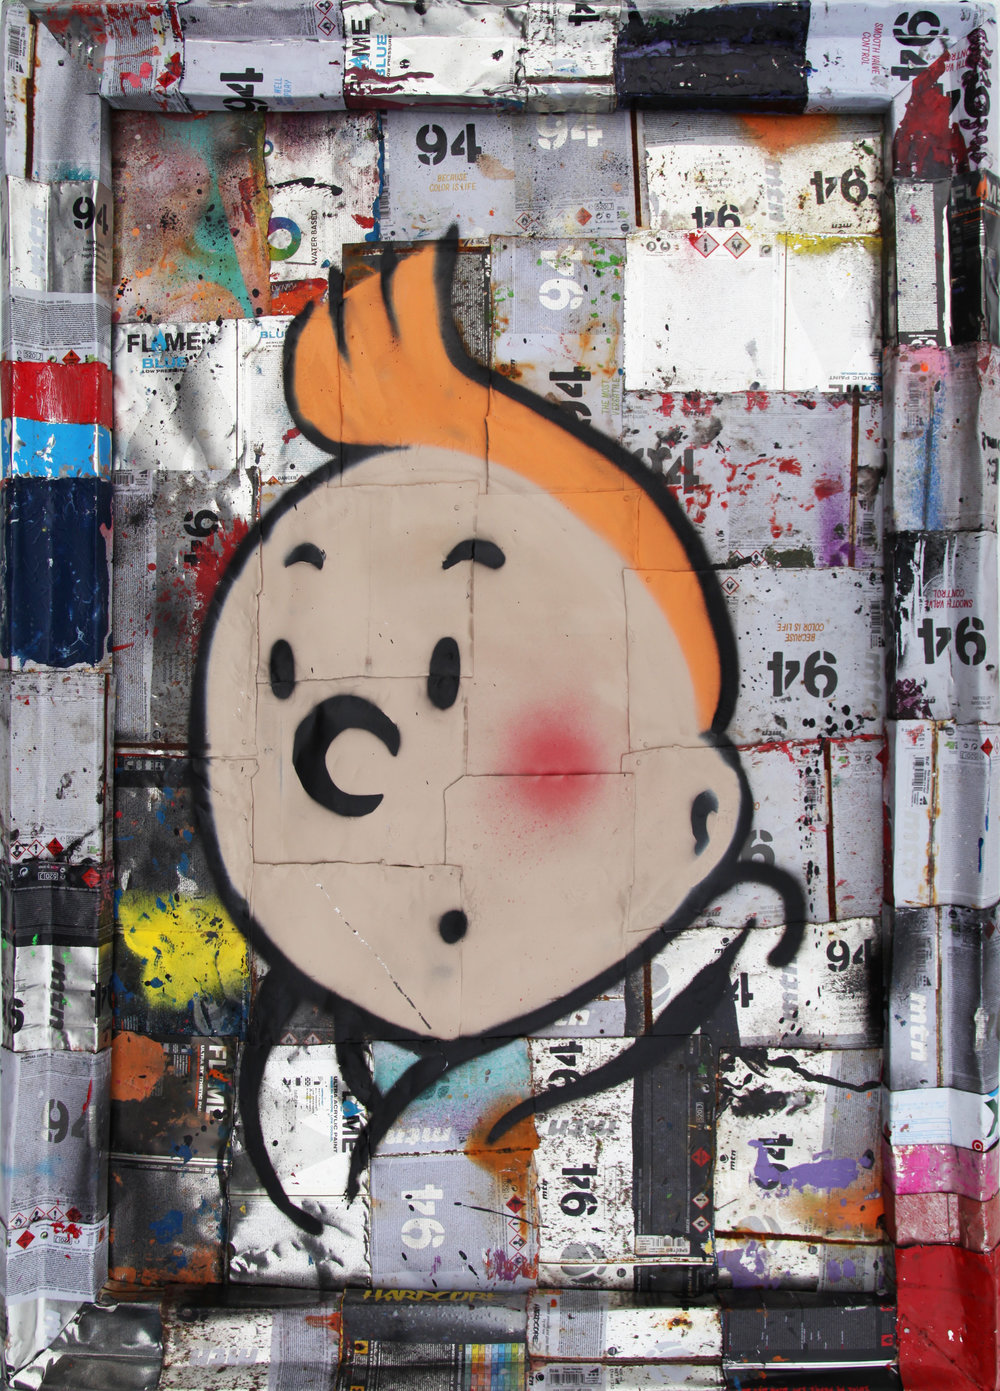 """Tin Tin 2"" Stencil and Hand Spray Paint on deconstructed Can Background 60 x 90 cm 2016"